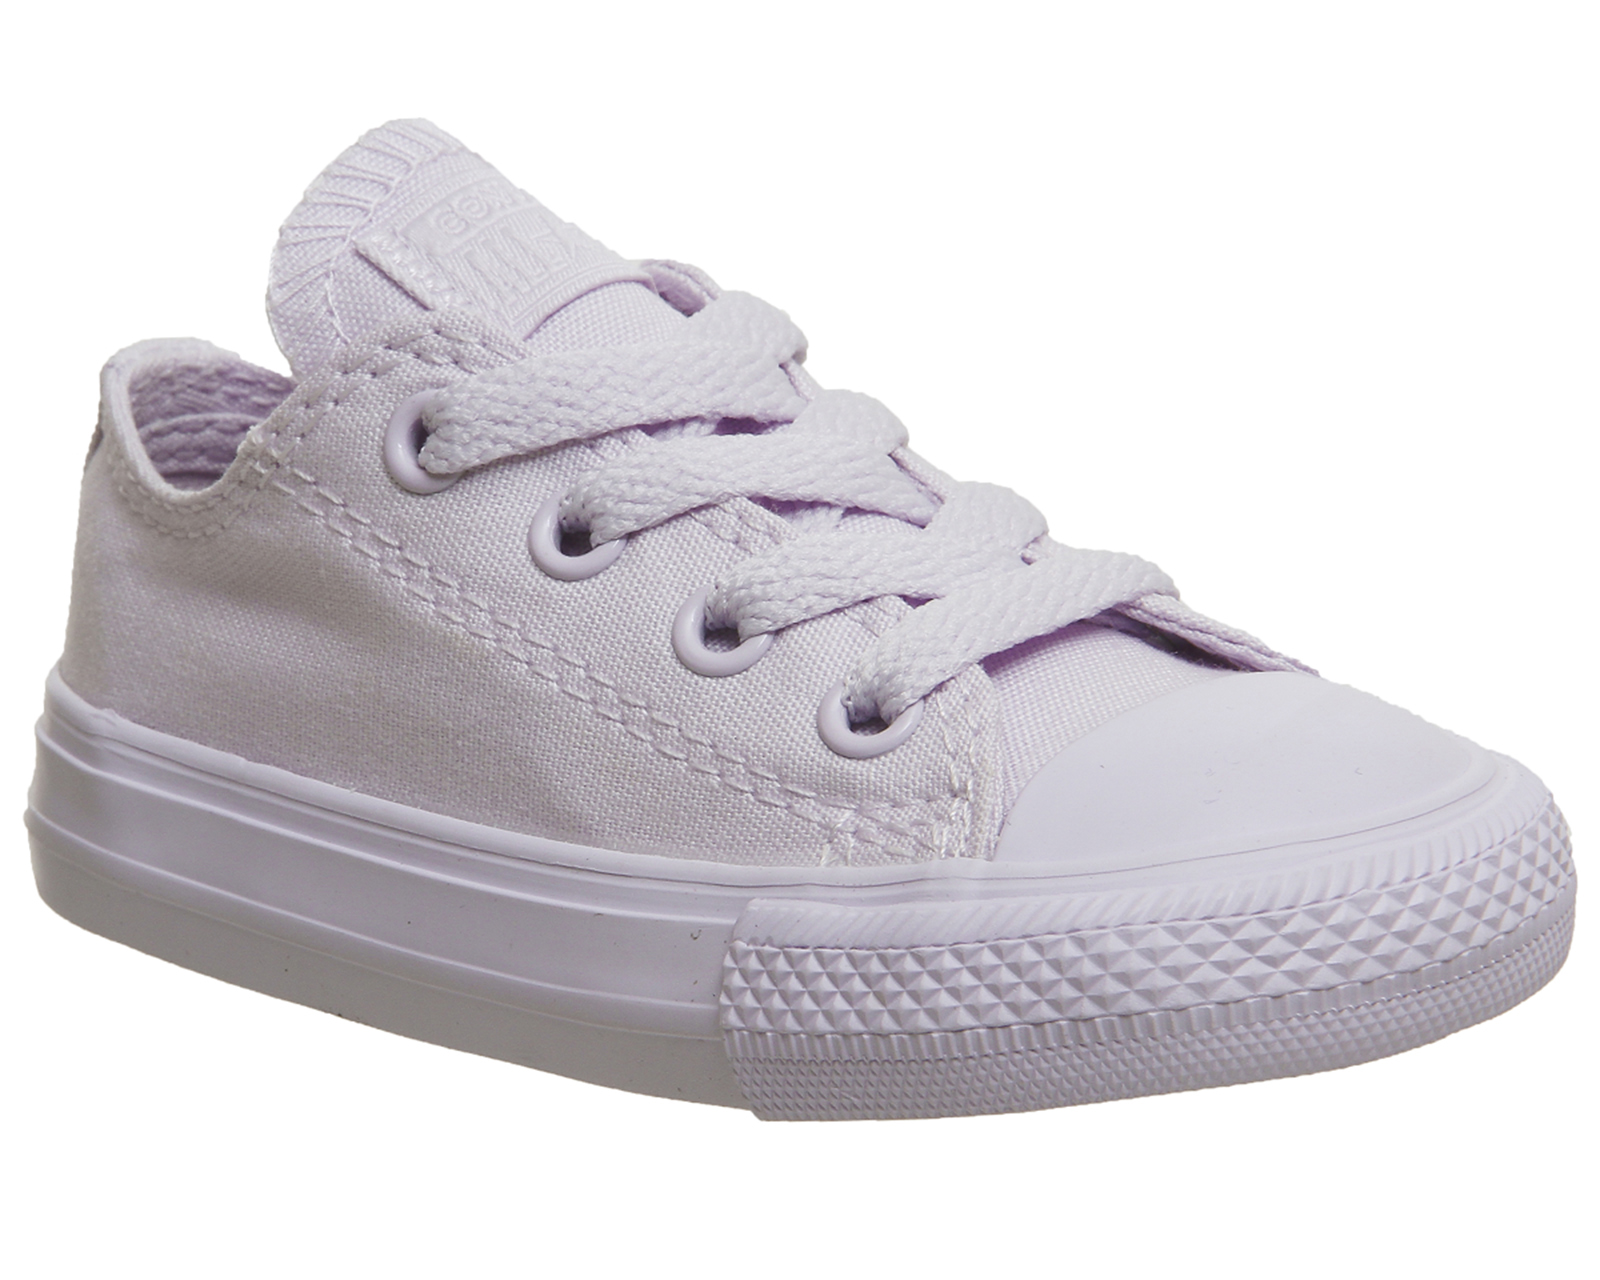 47b1616510ed65 Sentinel Kids Converse Purple Canvas Lace Up Trainers Size UK 4 Infant  Ex- Display